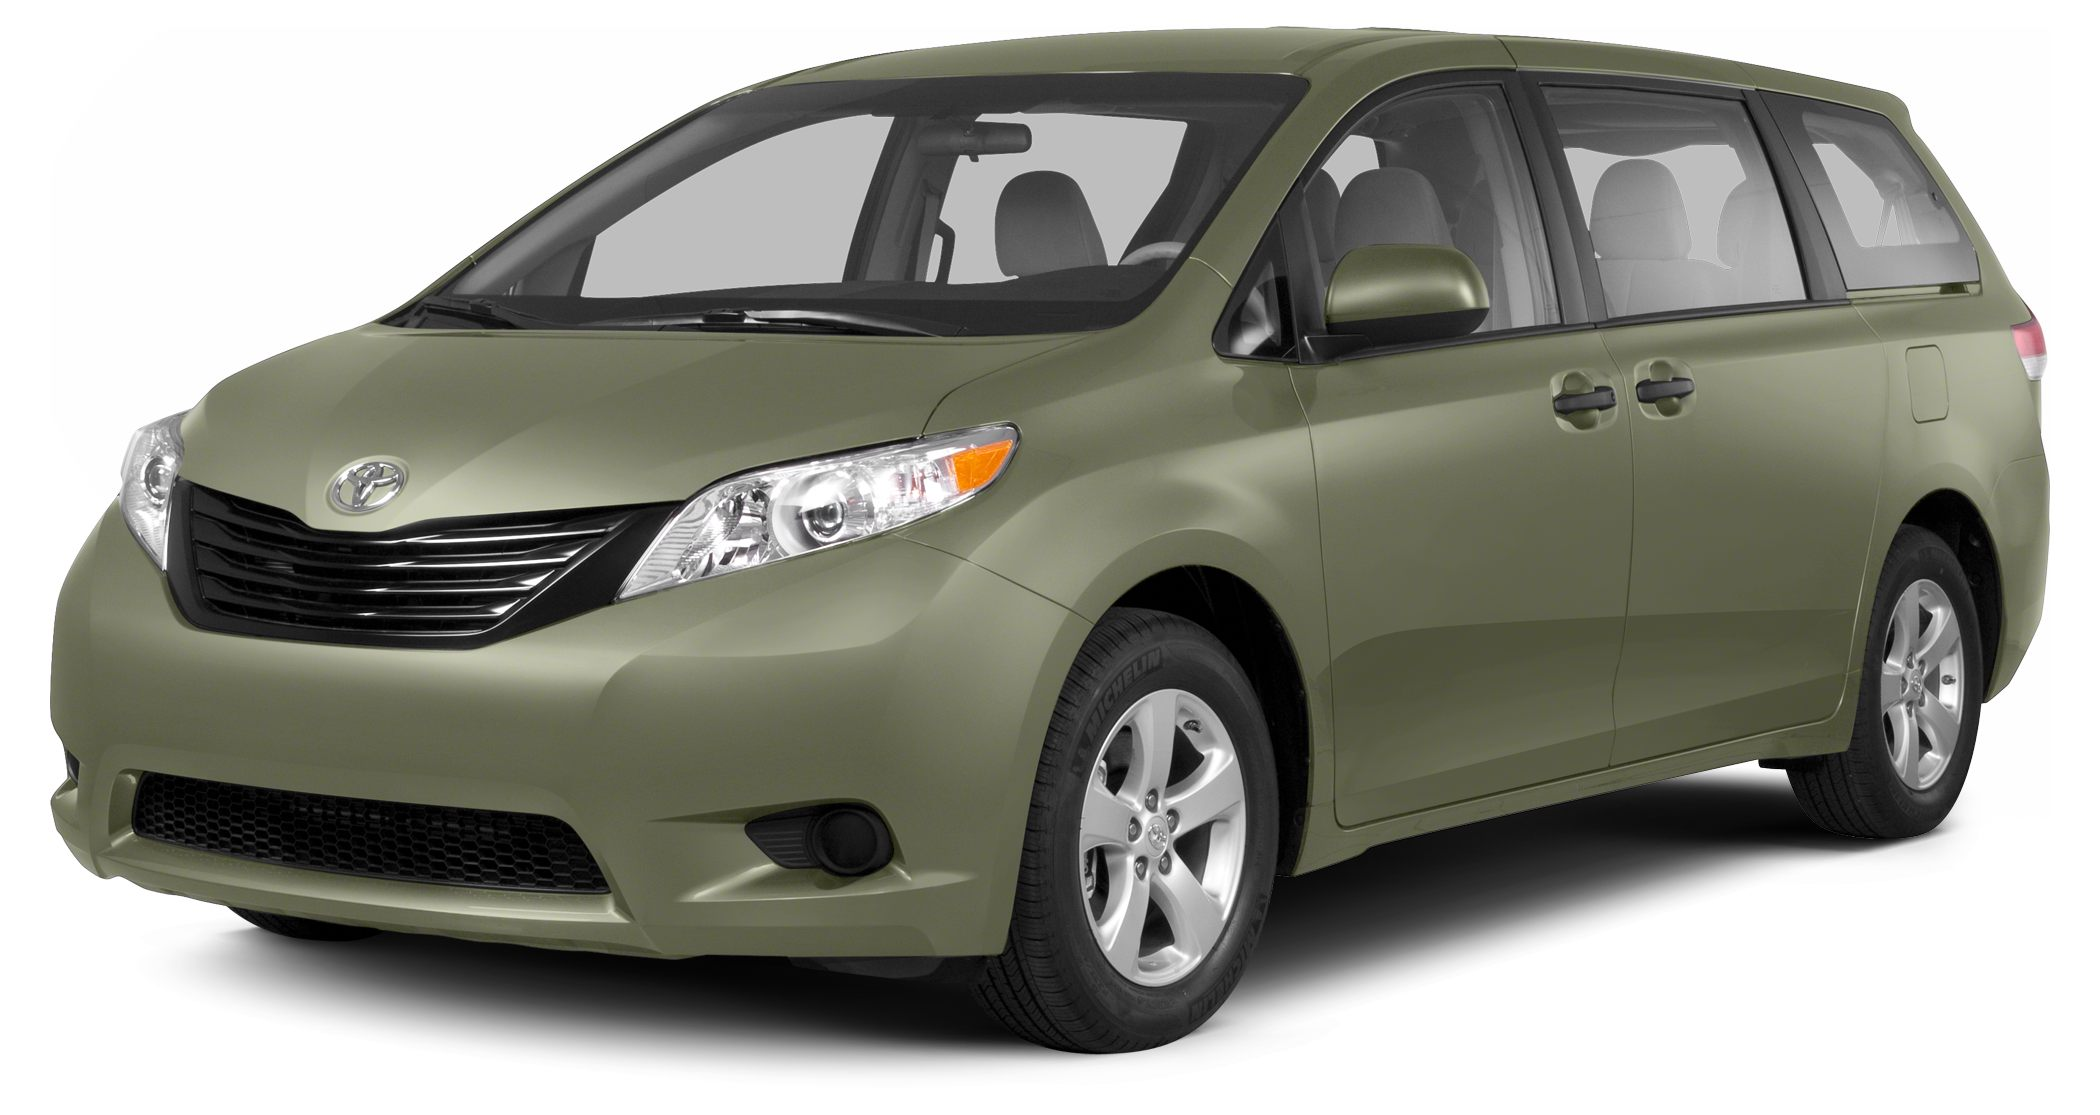 2013 Toyota Sienna LE 7 Passenger CARFAX 1-Owner LOW MILES - 35294 REDUCED FROM 26450 3rd Ro